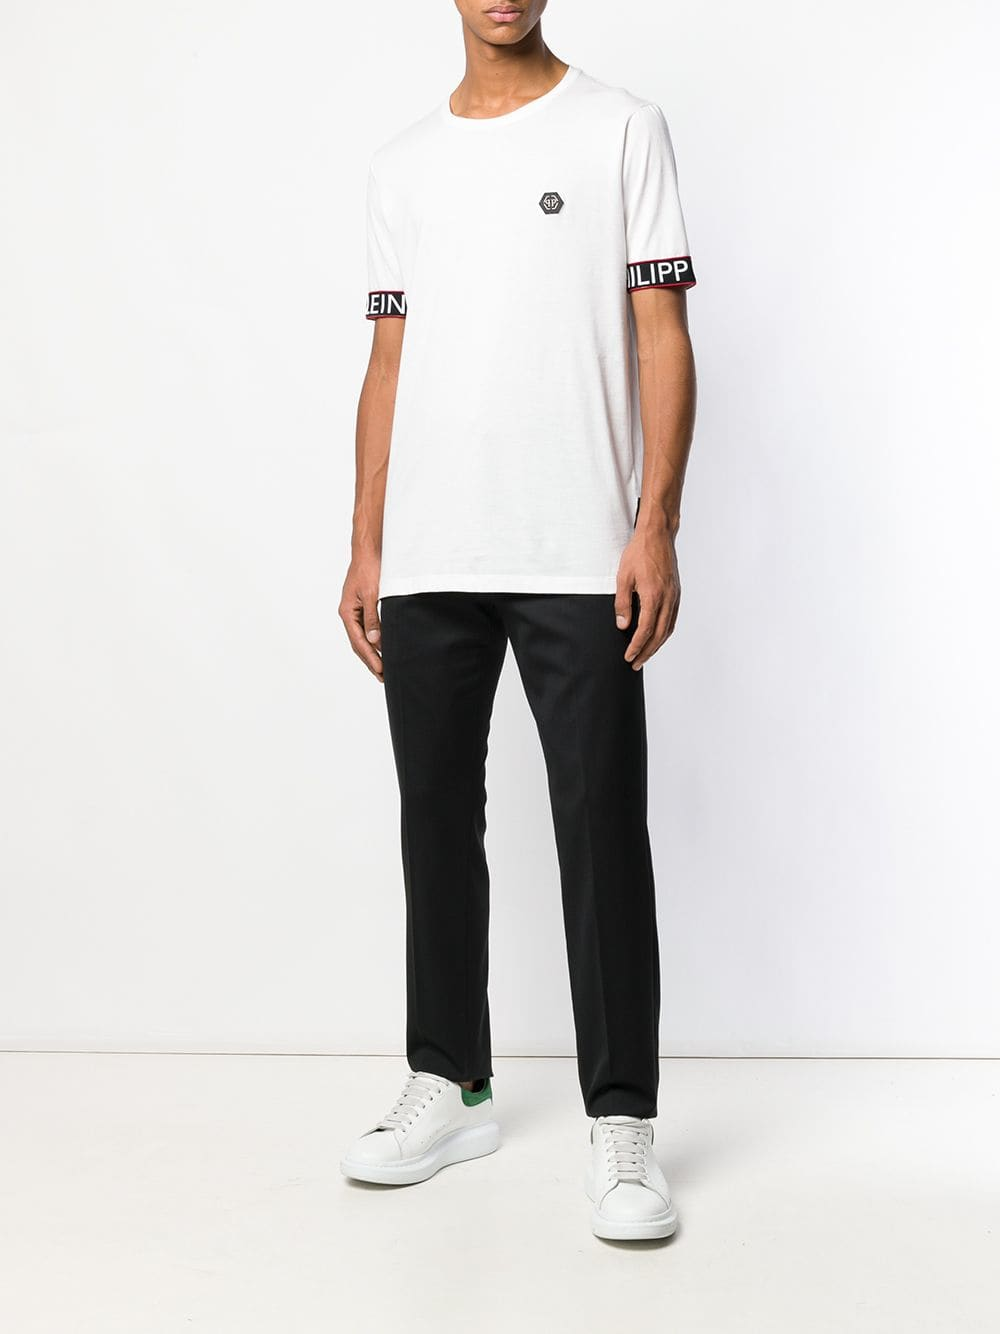 PHILIPP PLEIN contrast logo trim T-shirt | Maison De Fashion